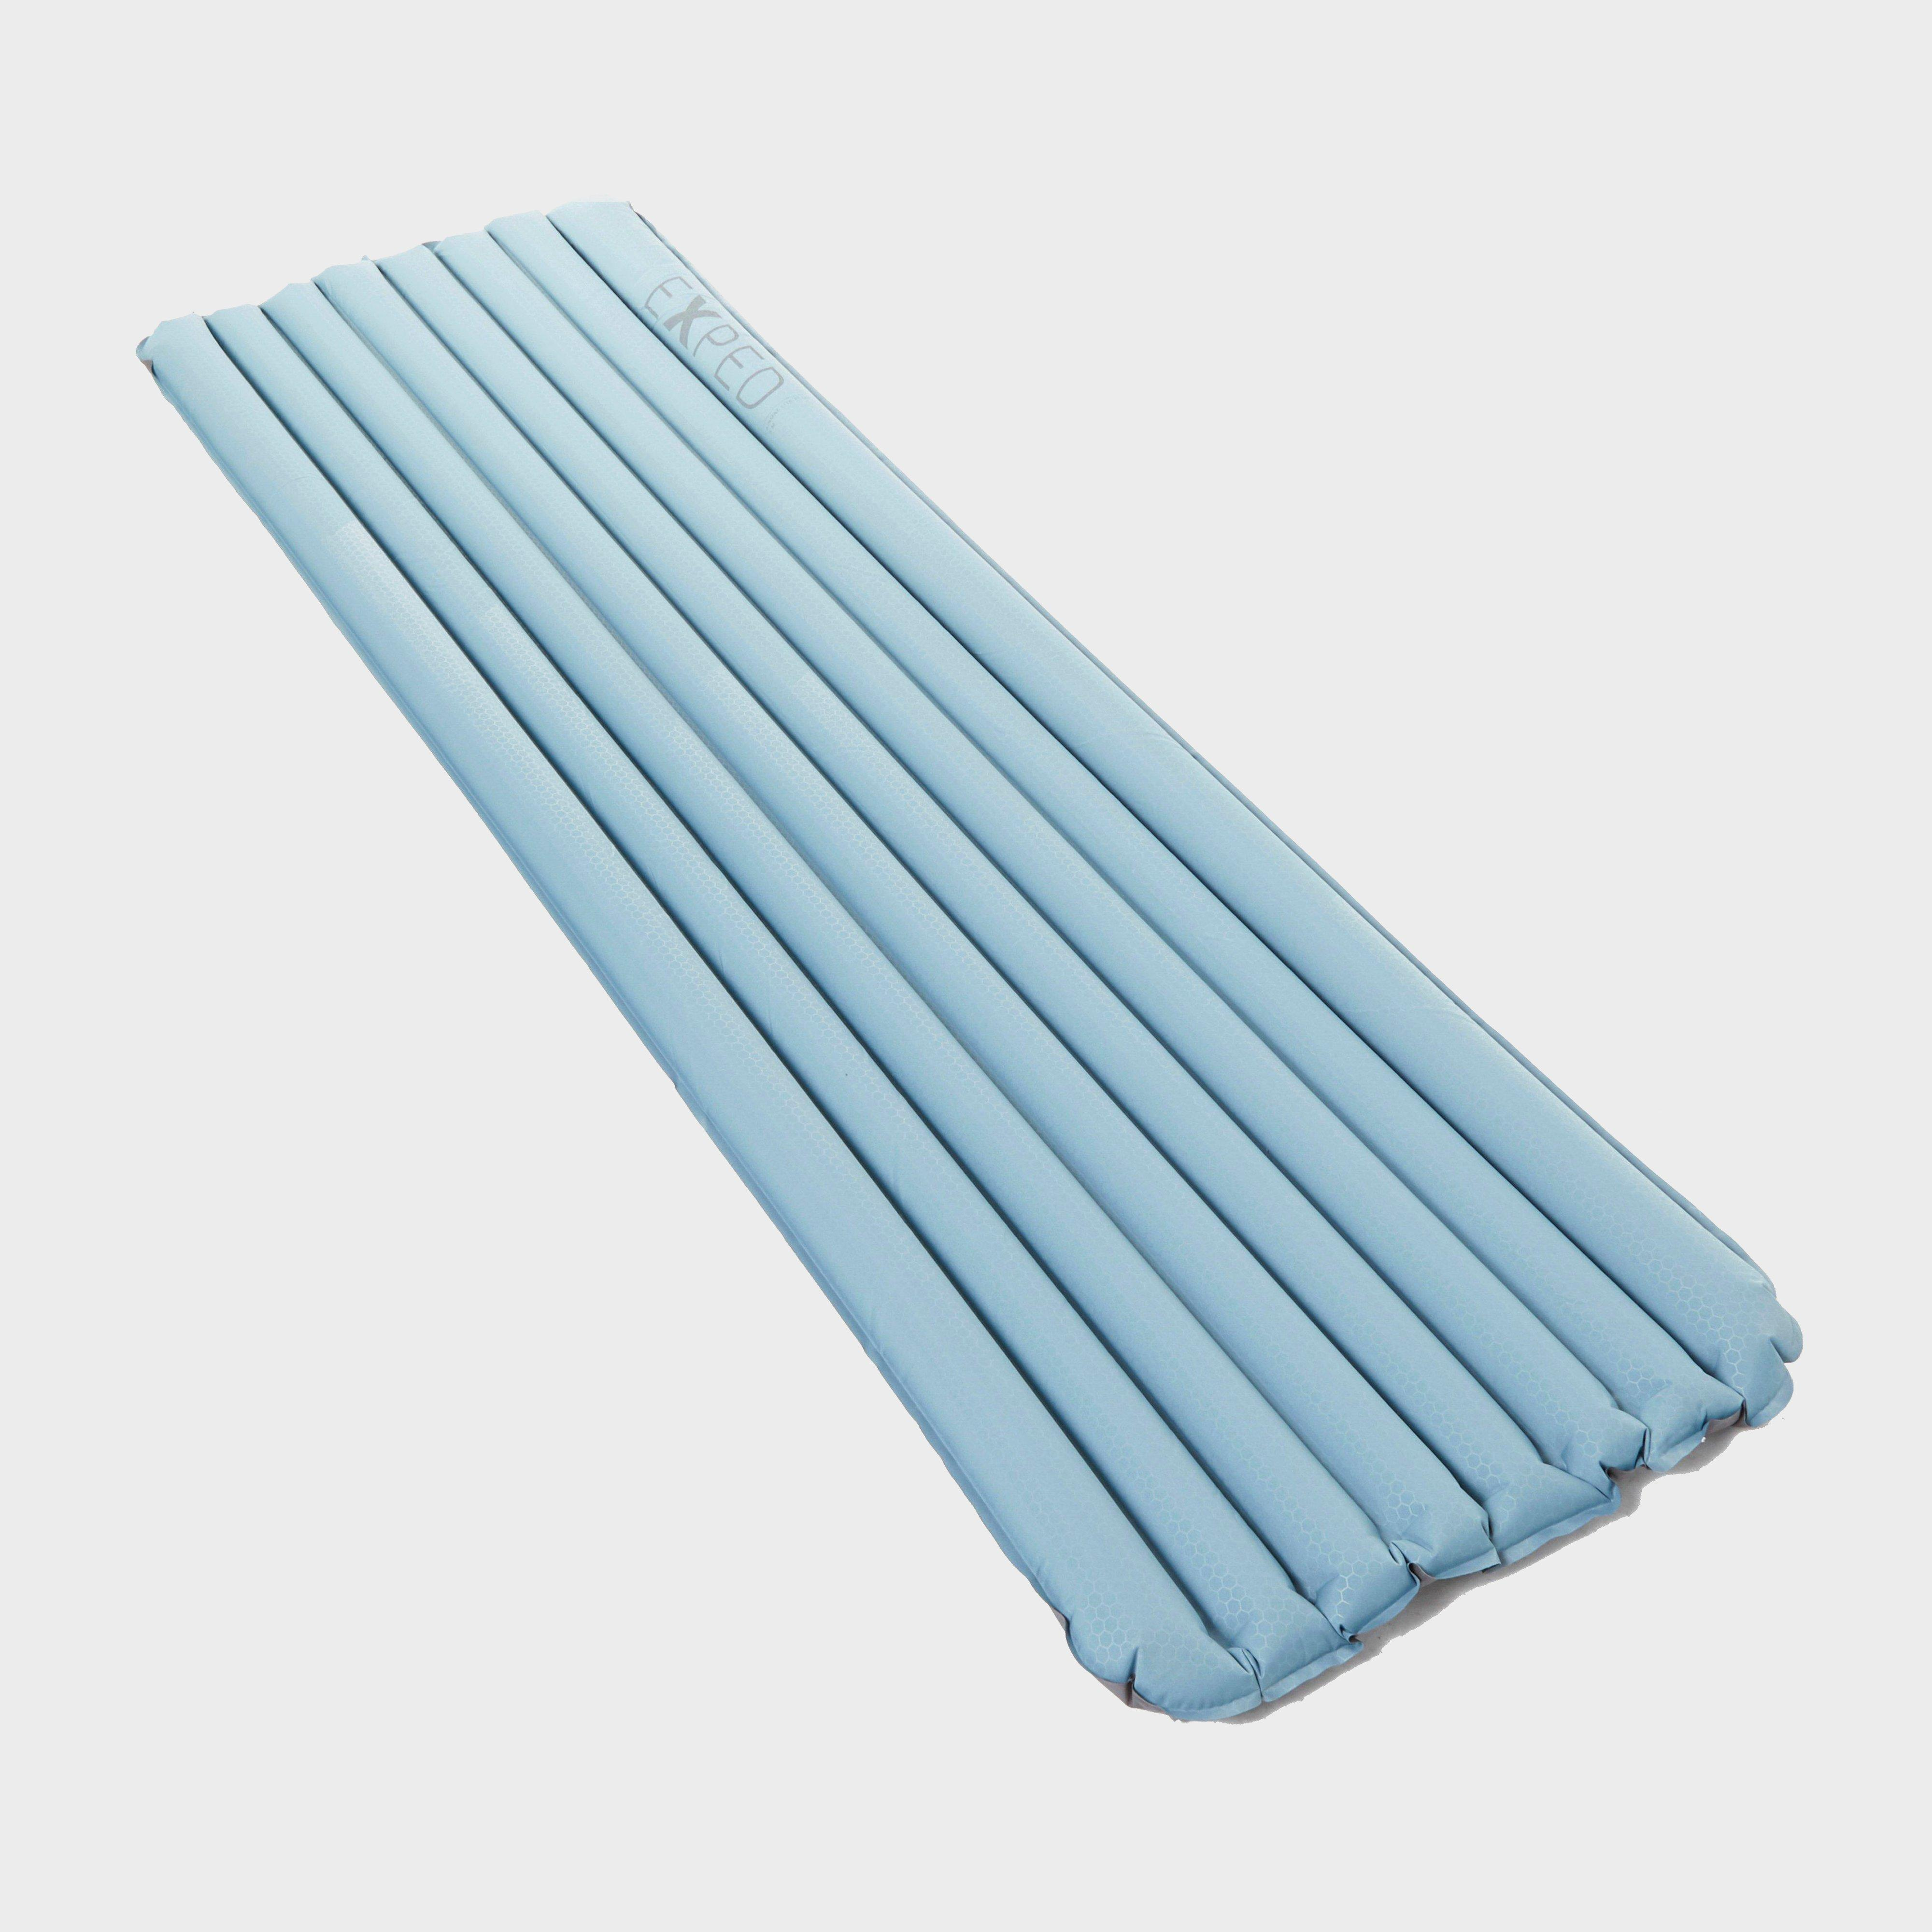 Exped Exped Airmat Lite Plus 5 Inflatable Sleeping Mat - Blue, Blue